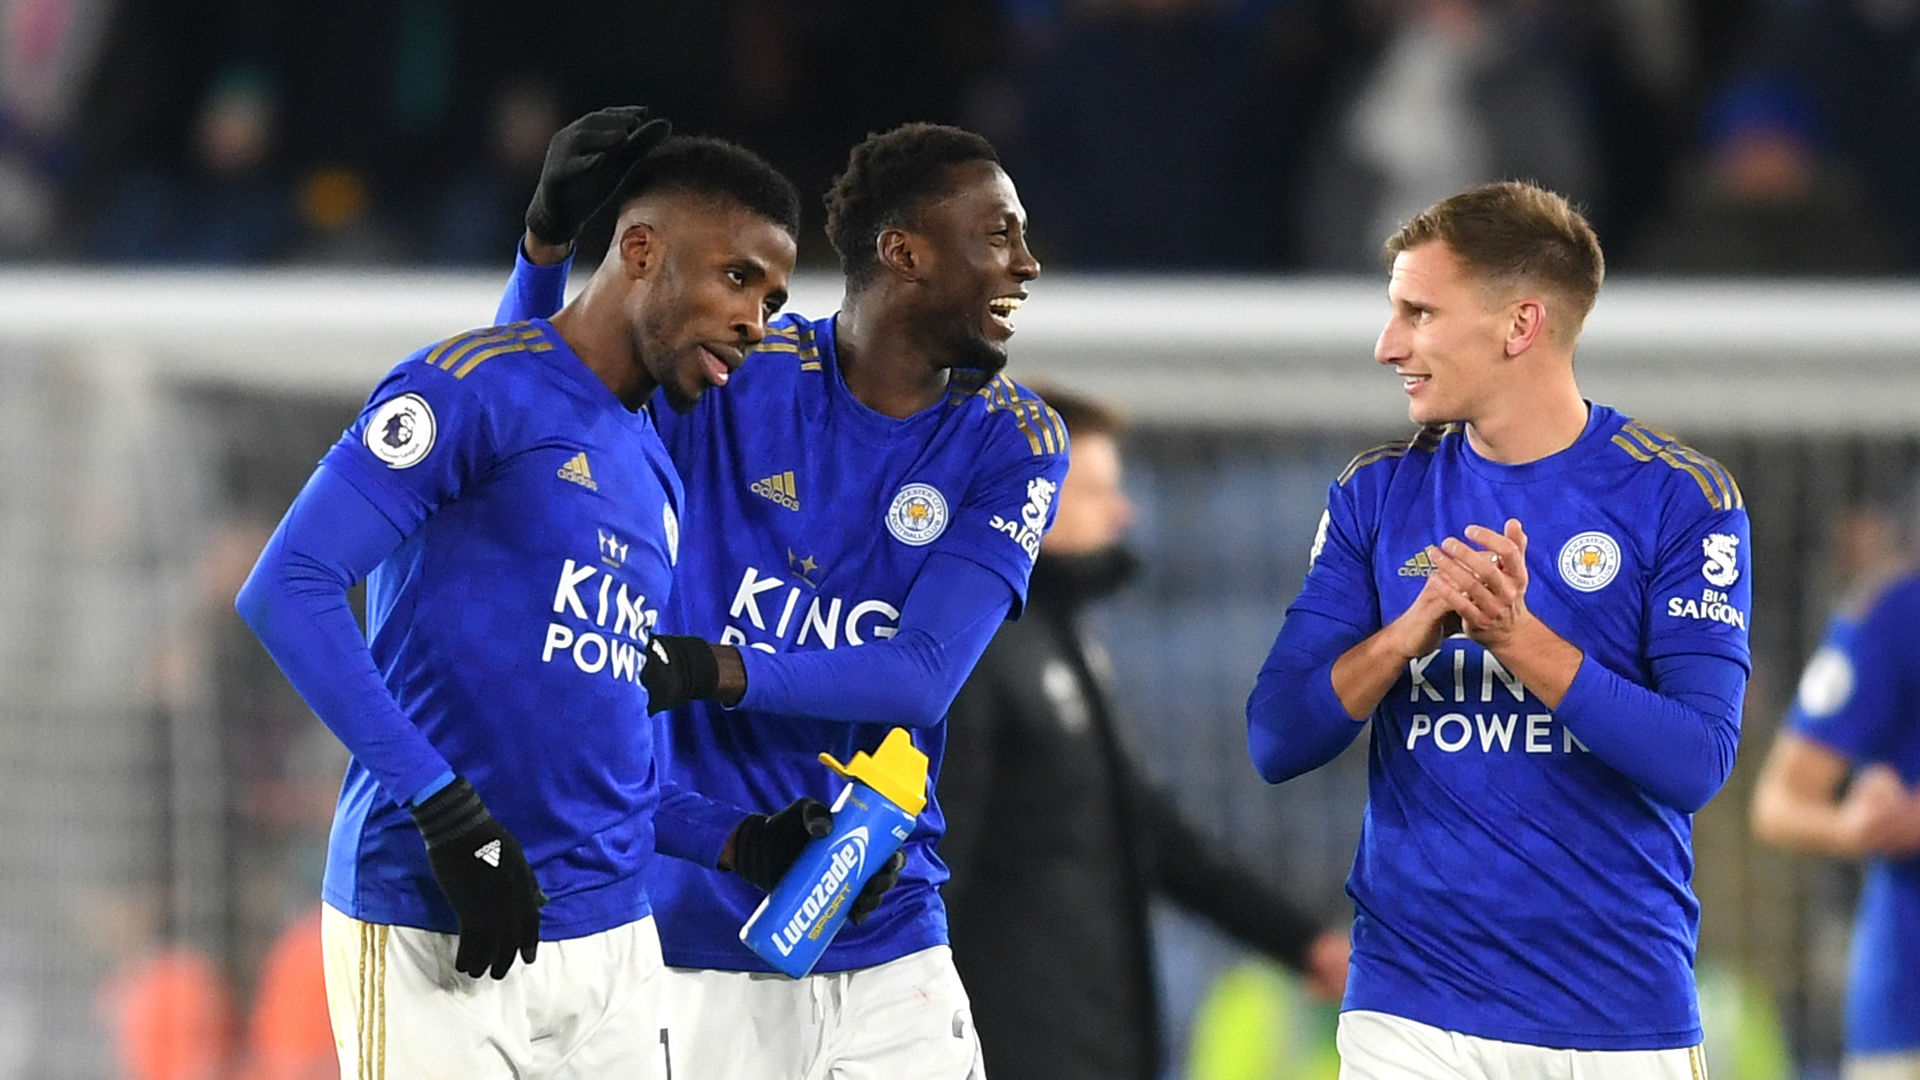 Leicester City forward Iheanacho hails Ndidi as a 'great passer of the ball'